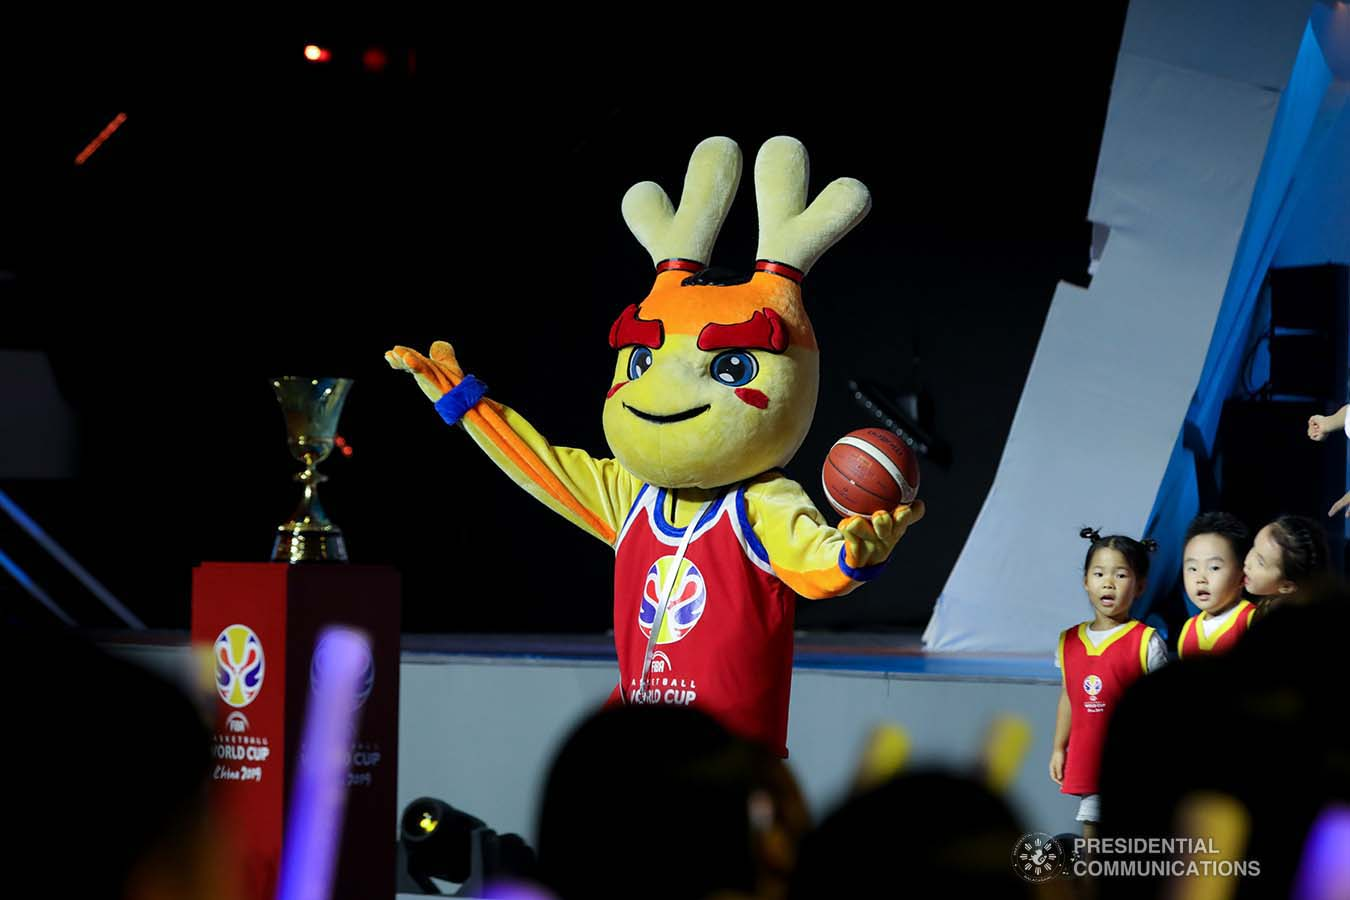 A mascot entertains the attendees of the FIBA Basketball World Cup 2019 opening ceremony at the National Aquatics Center in Beijing, People's Republic of China on August 30, 2019. President Rodrigo Roa Duterte was among the guests during the opening of the prestigious international cagefest. ROBINSON NIÑAL JR./PRESIDENTIAL PHOTO